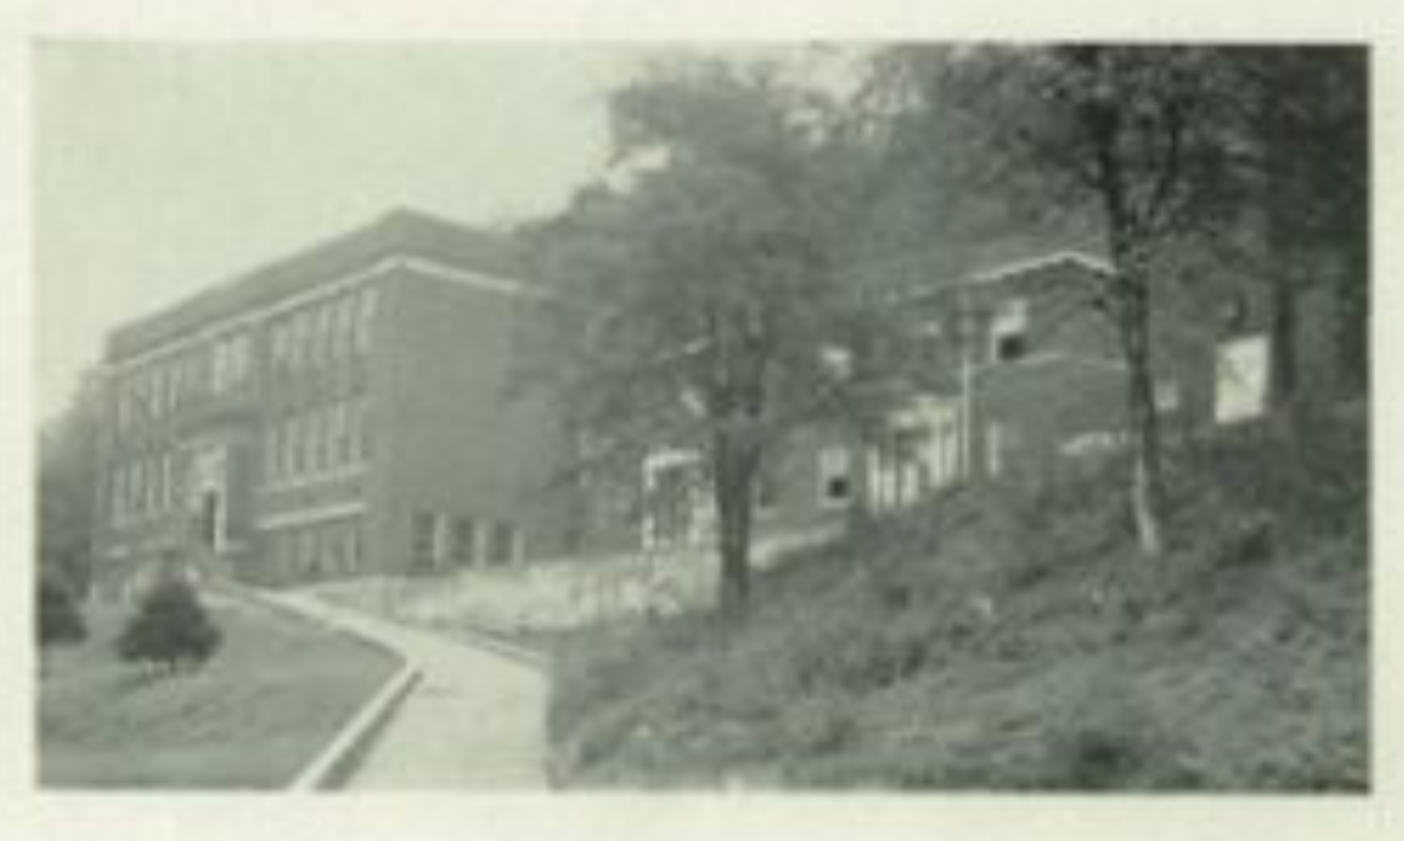 Photo of Simmons High School from a 1948 yearbook.